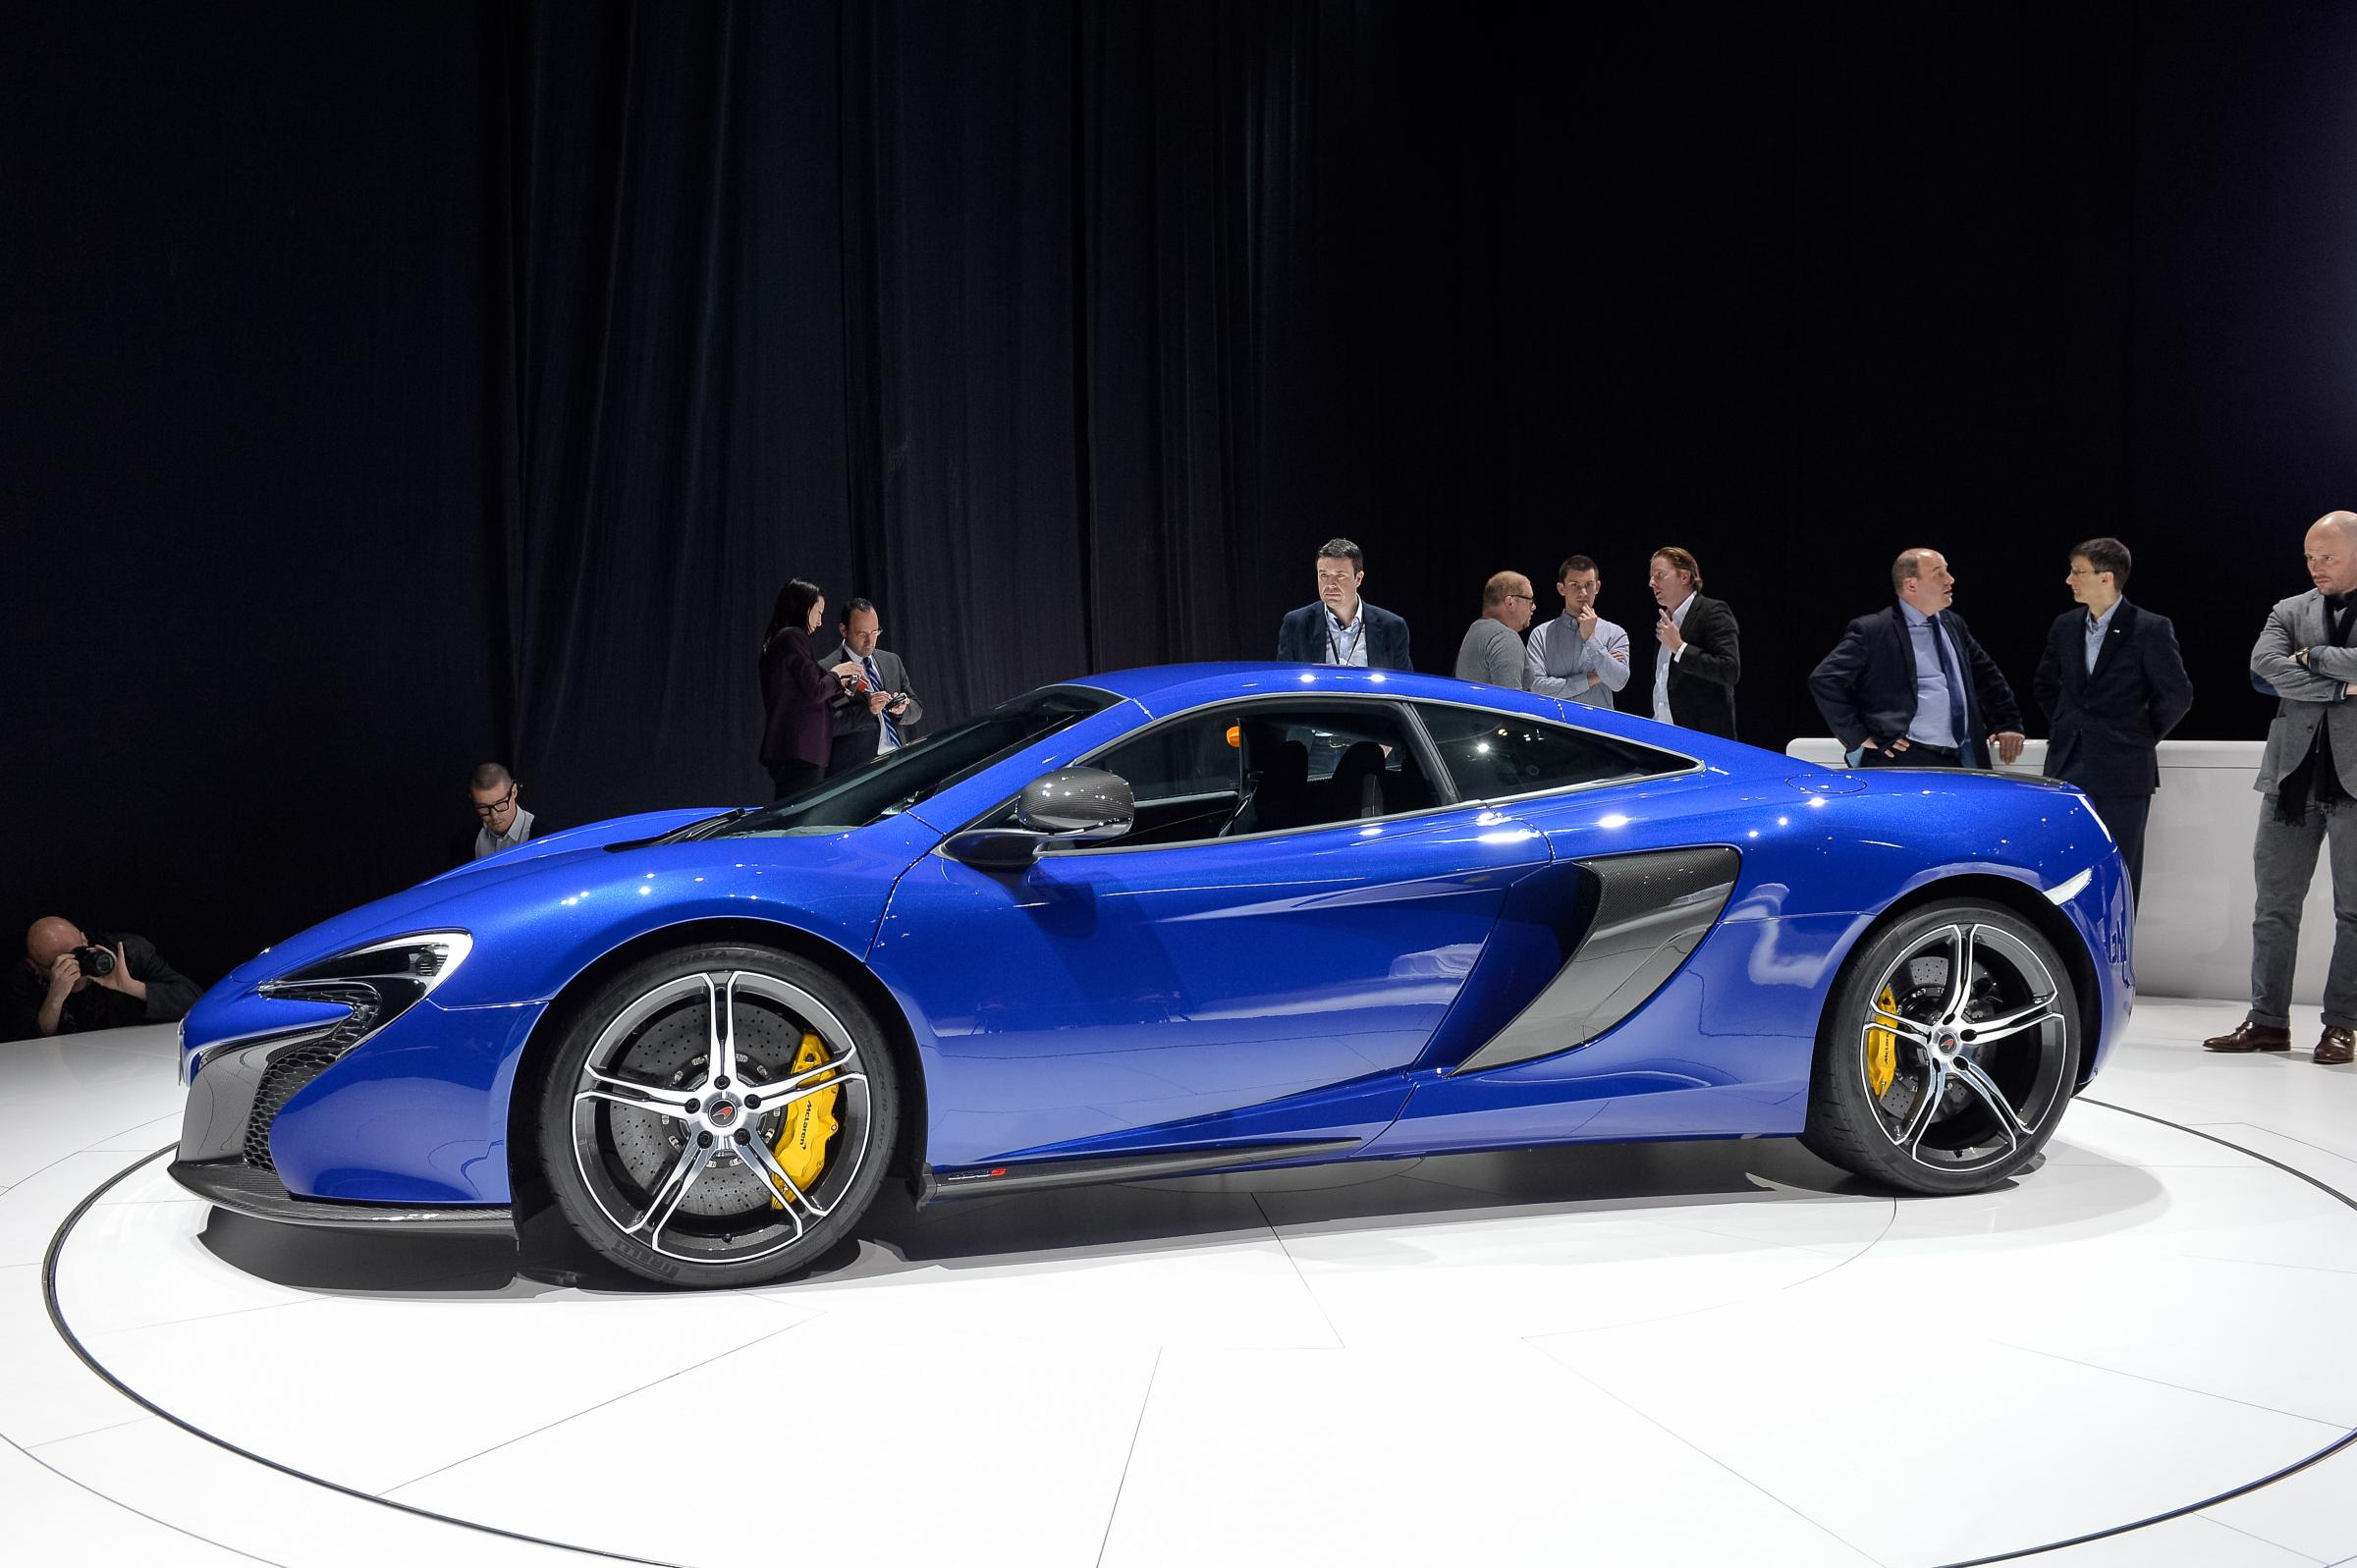 Prepare Your Checkbooks: McLaren Announces Pricing for the 650S